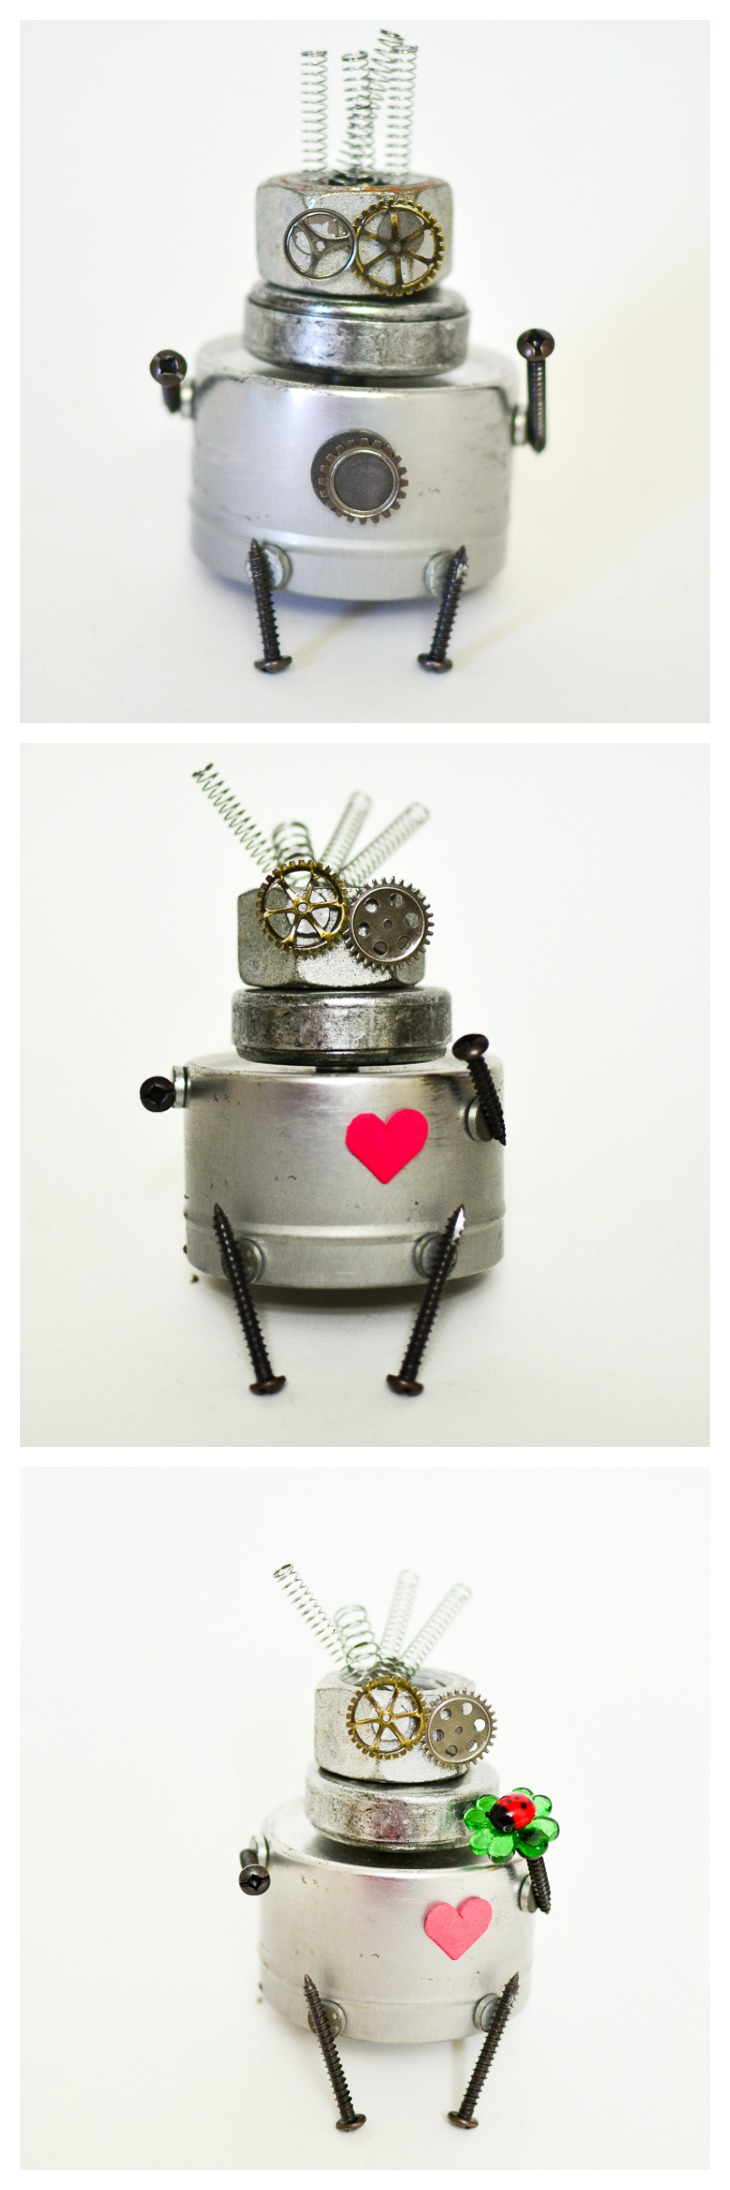 Magnetic scrap metal sculptures, robots and machines. Steampunk-inspired craft and STEAM building fun for kids!